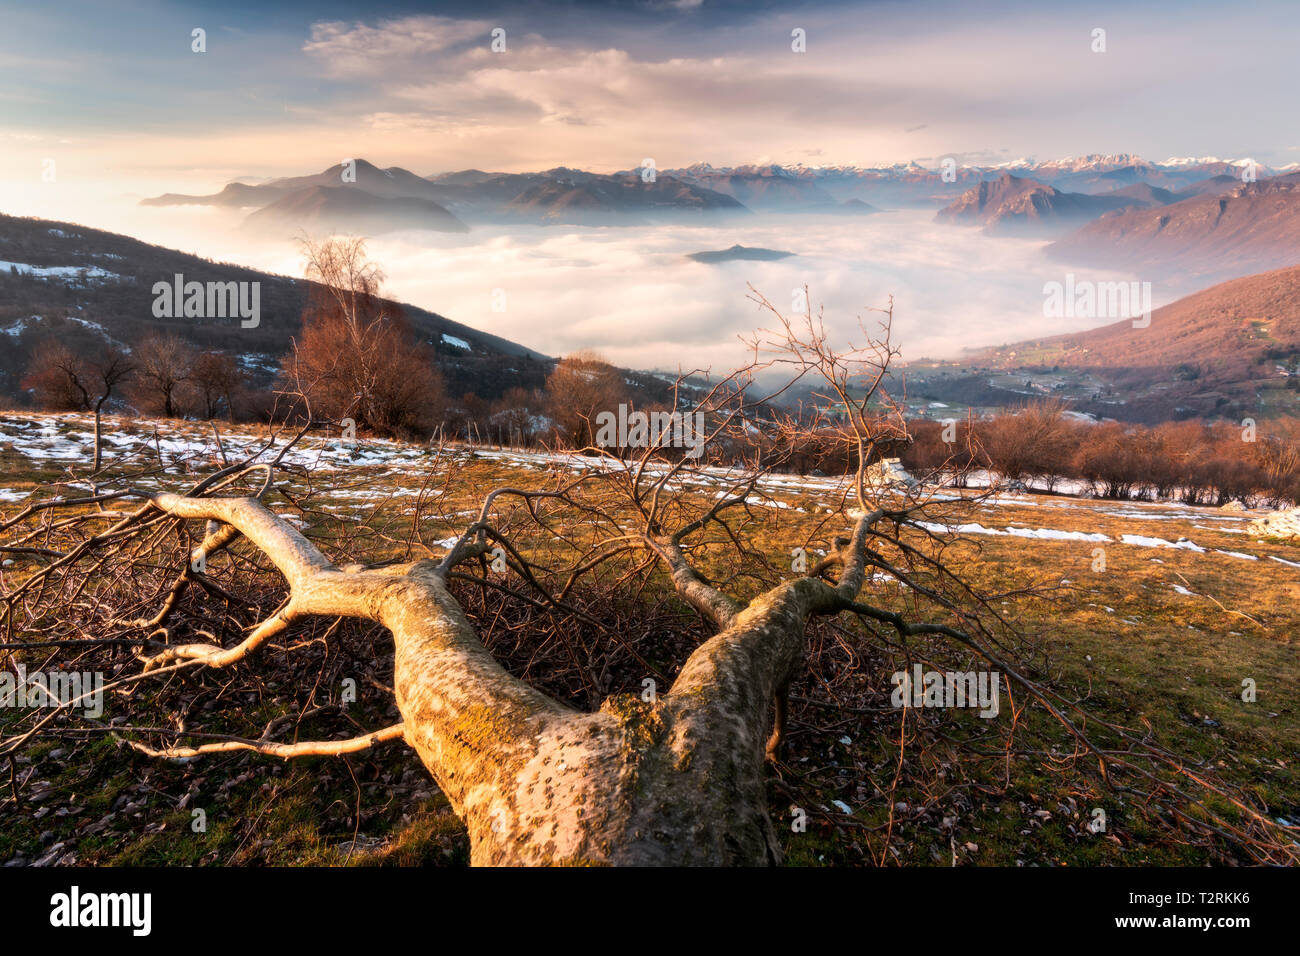 Iseo lake view from Colmi of Sulzano in brescia province, Lombardy district, Europe - Stock Image